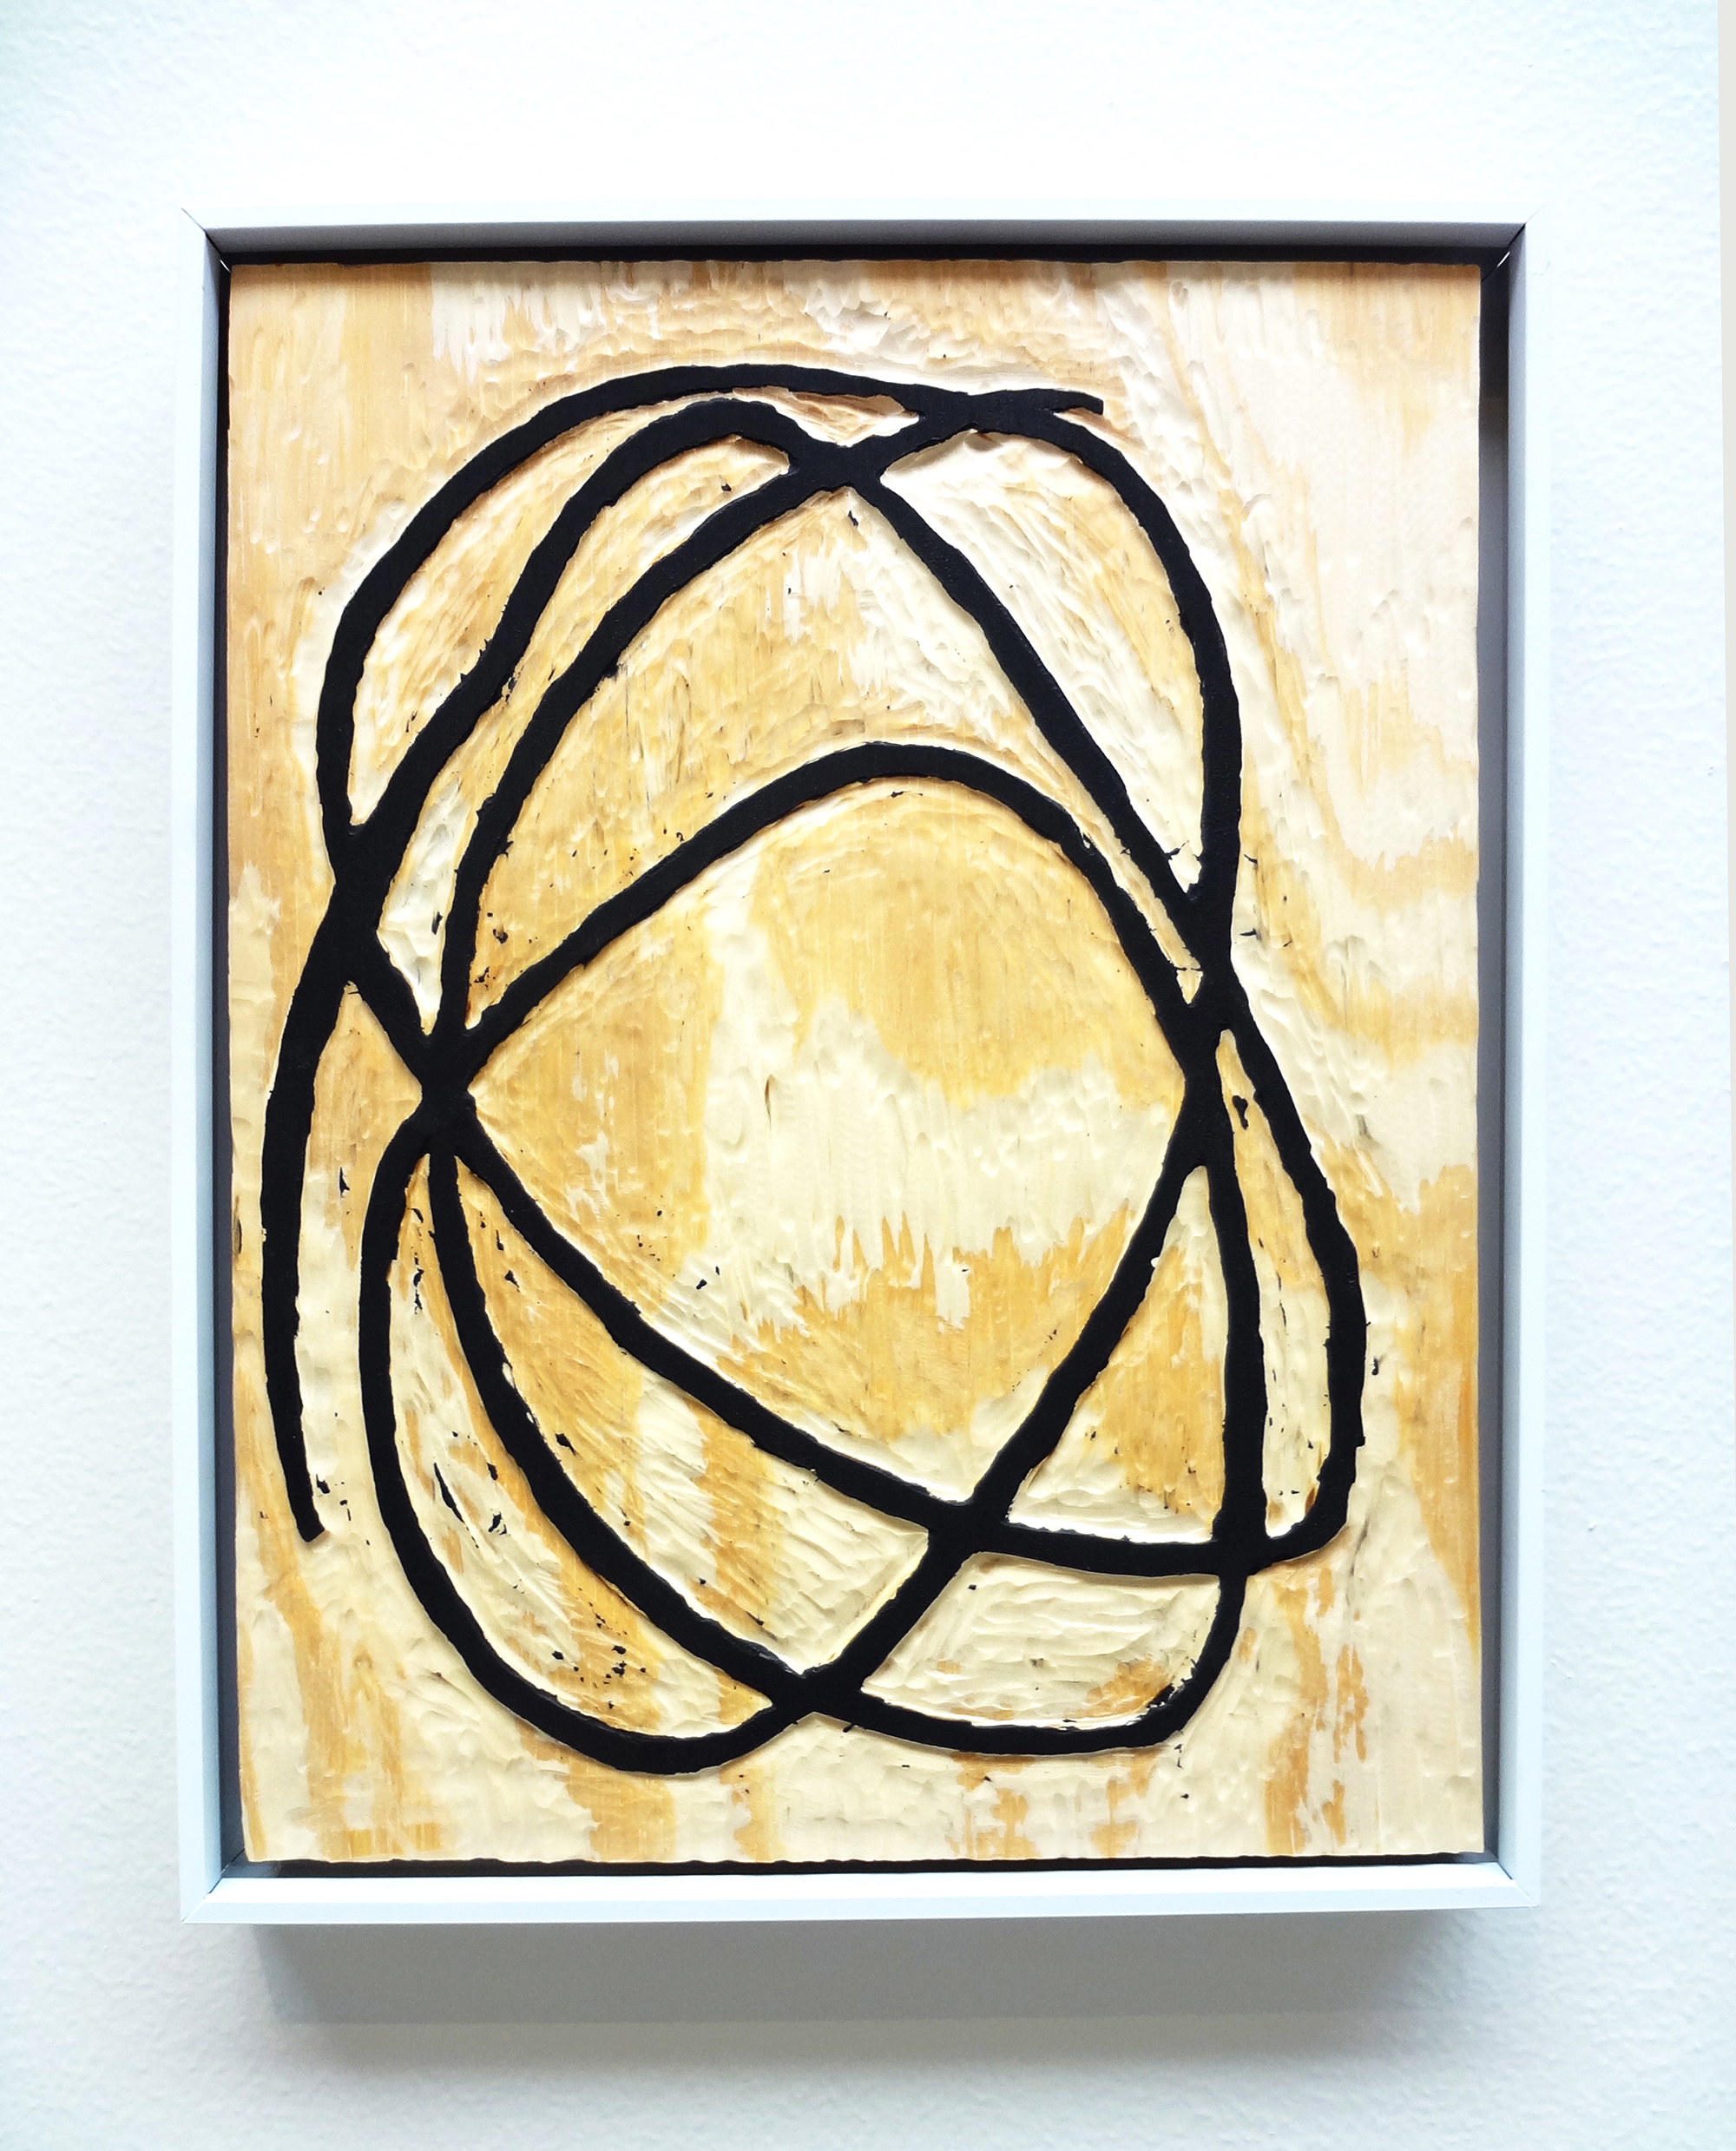 Meghan Gerety  Untitled 07 , 2015 blockprint ink on plywood  15 x 12 in.framed in aluminum